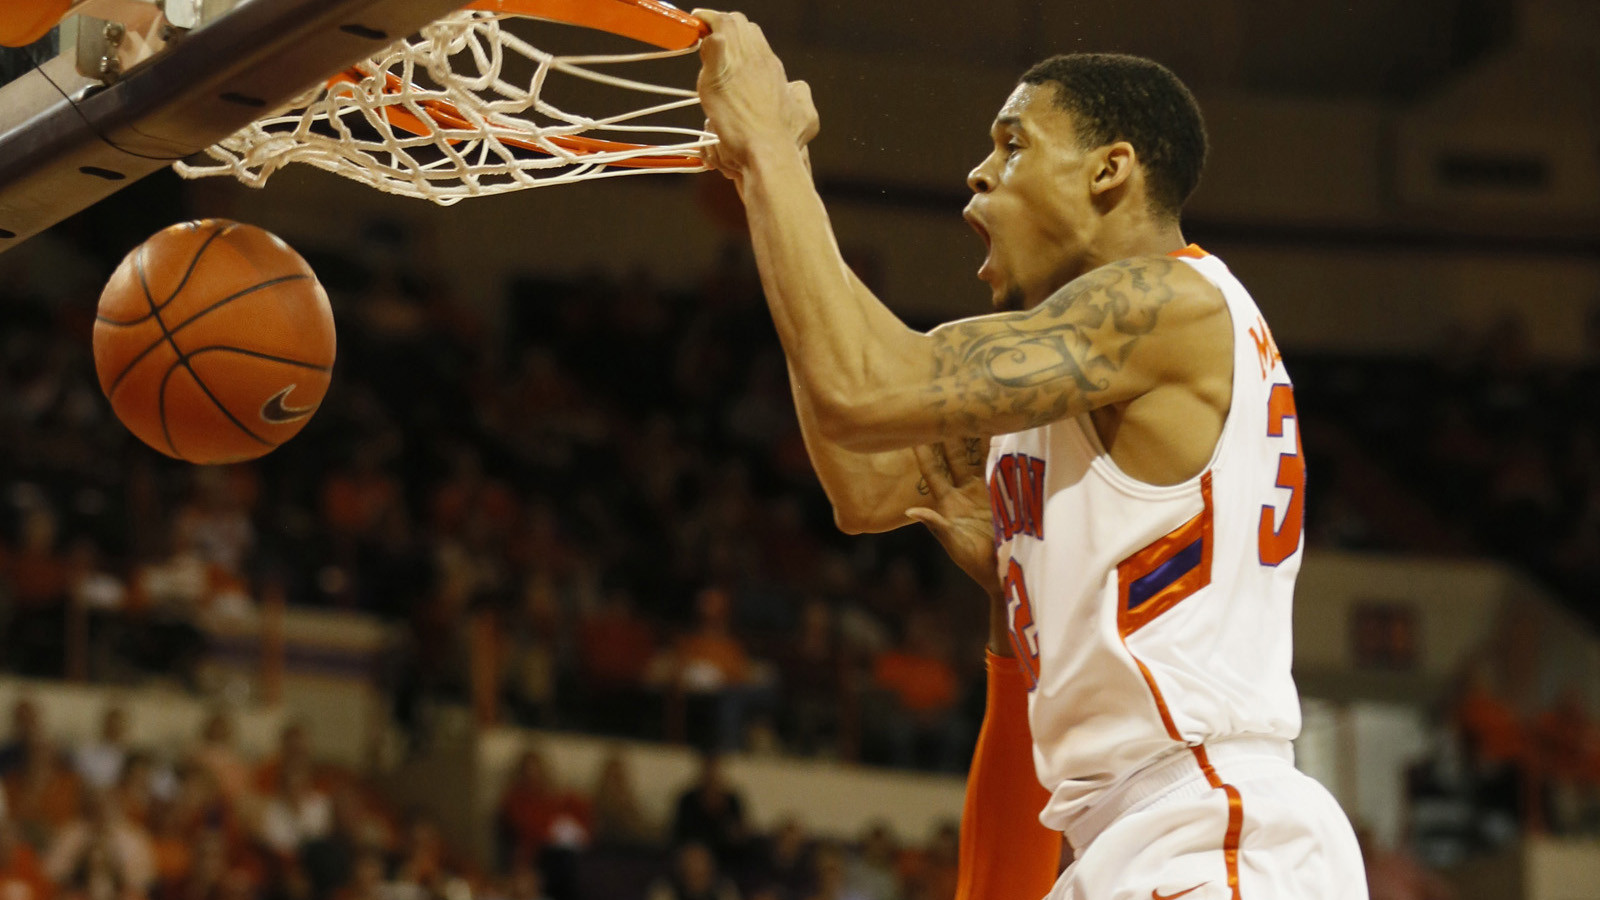 Special Youth Ticket Price Available for Clemson-Boston College Game March 5